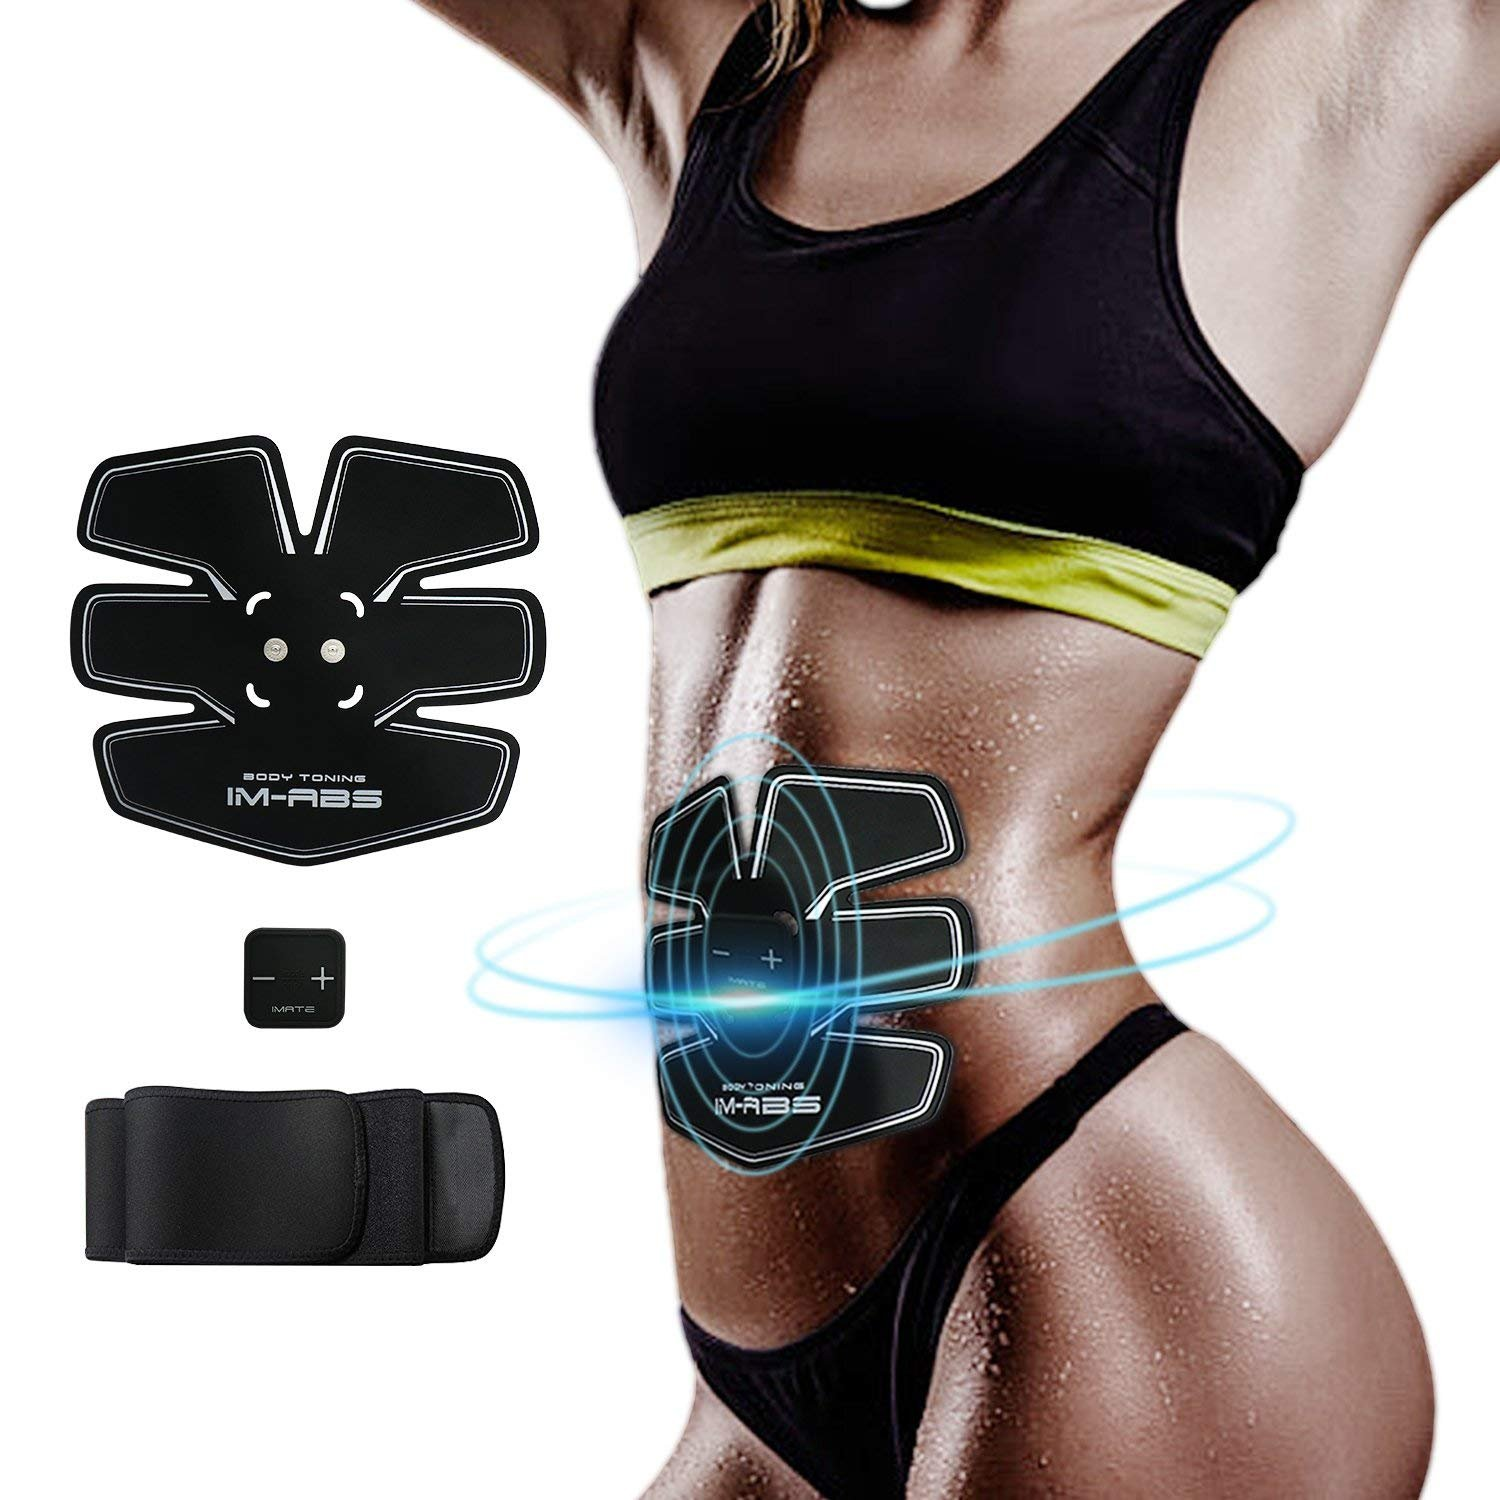 Honest Abdominal Ems Trainer Rechargeable Toner Belt Abs Muscle Stimulator Fitness Gear Sporting Goods